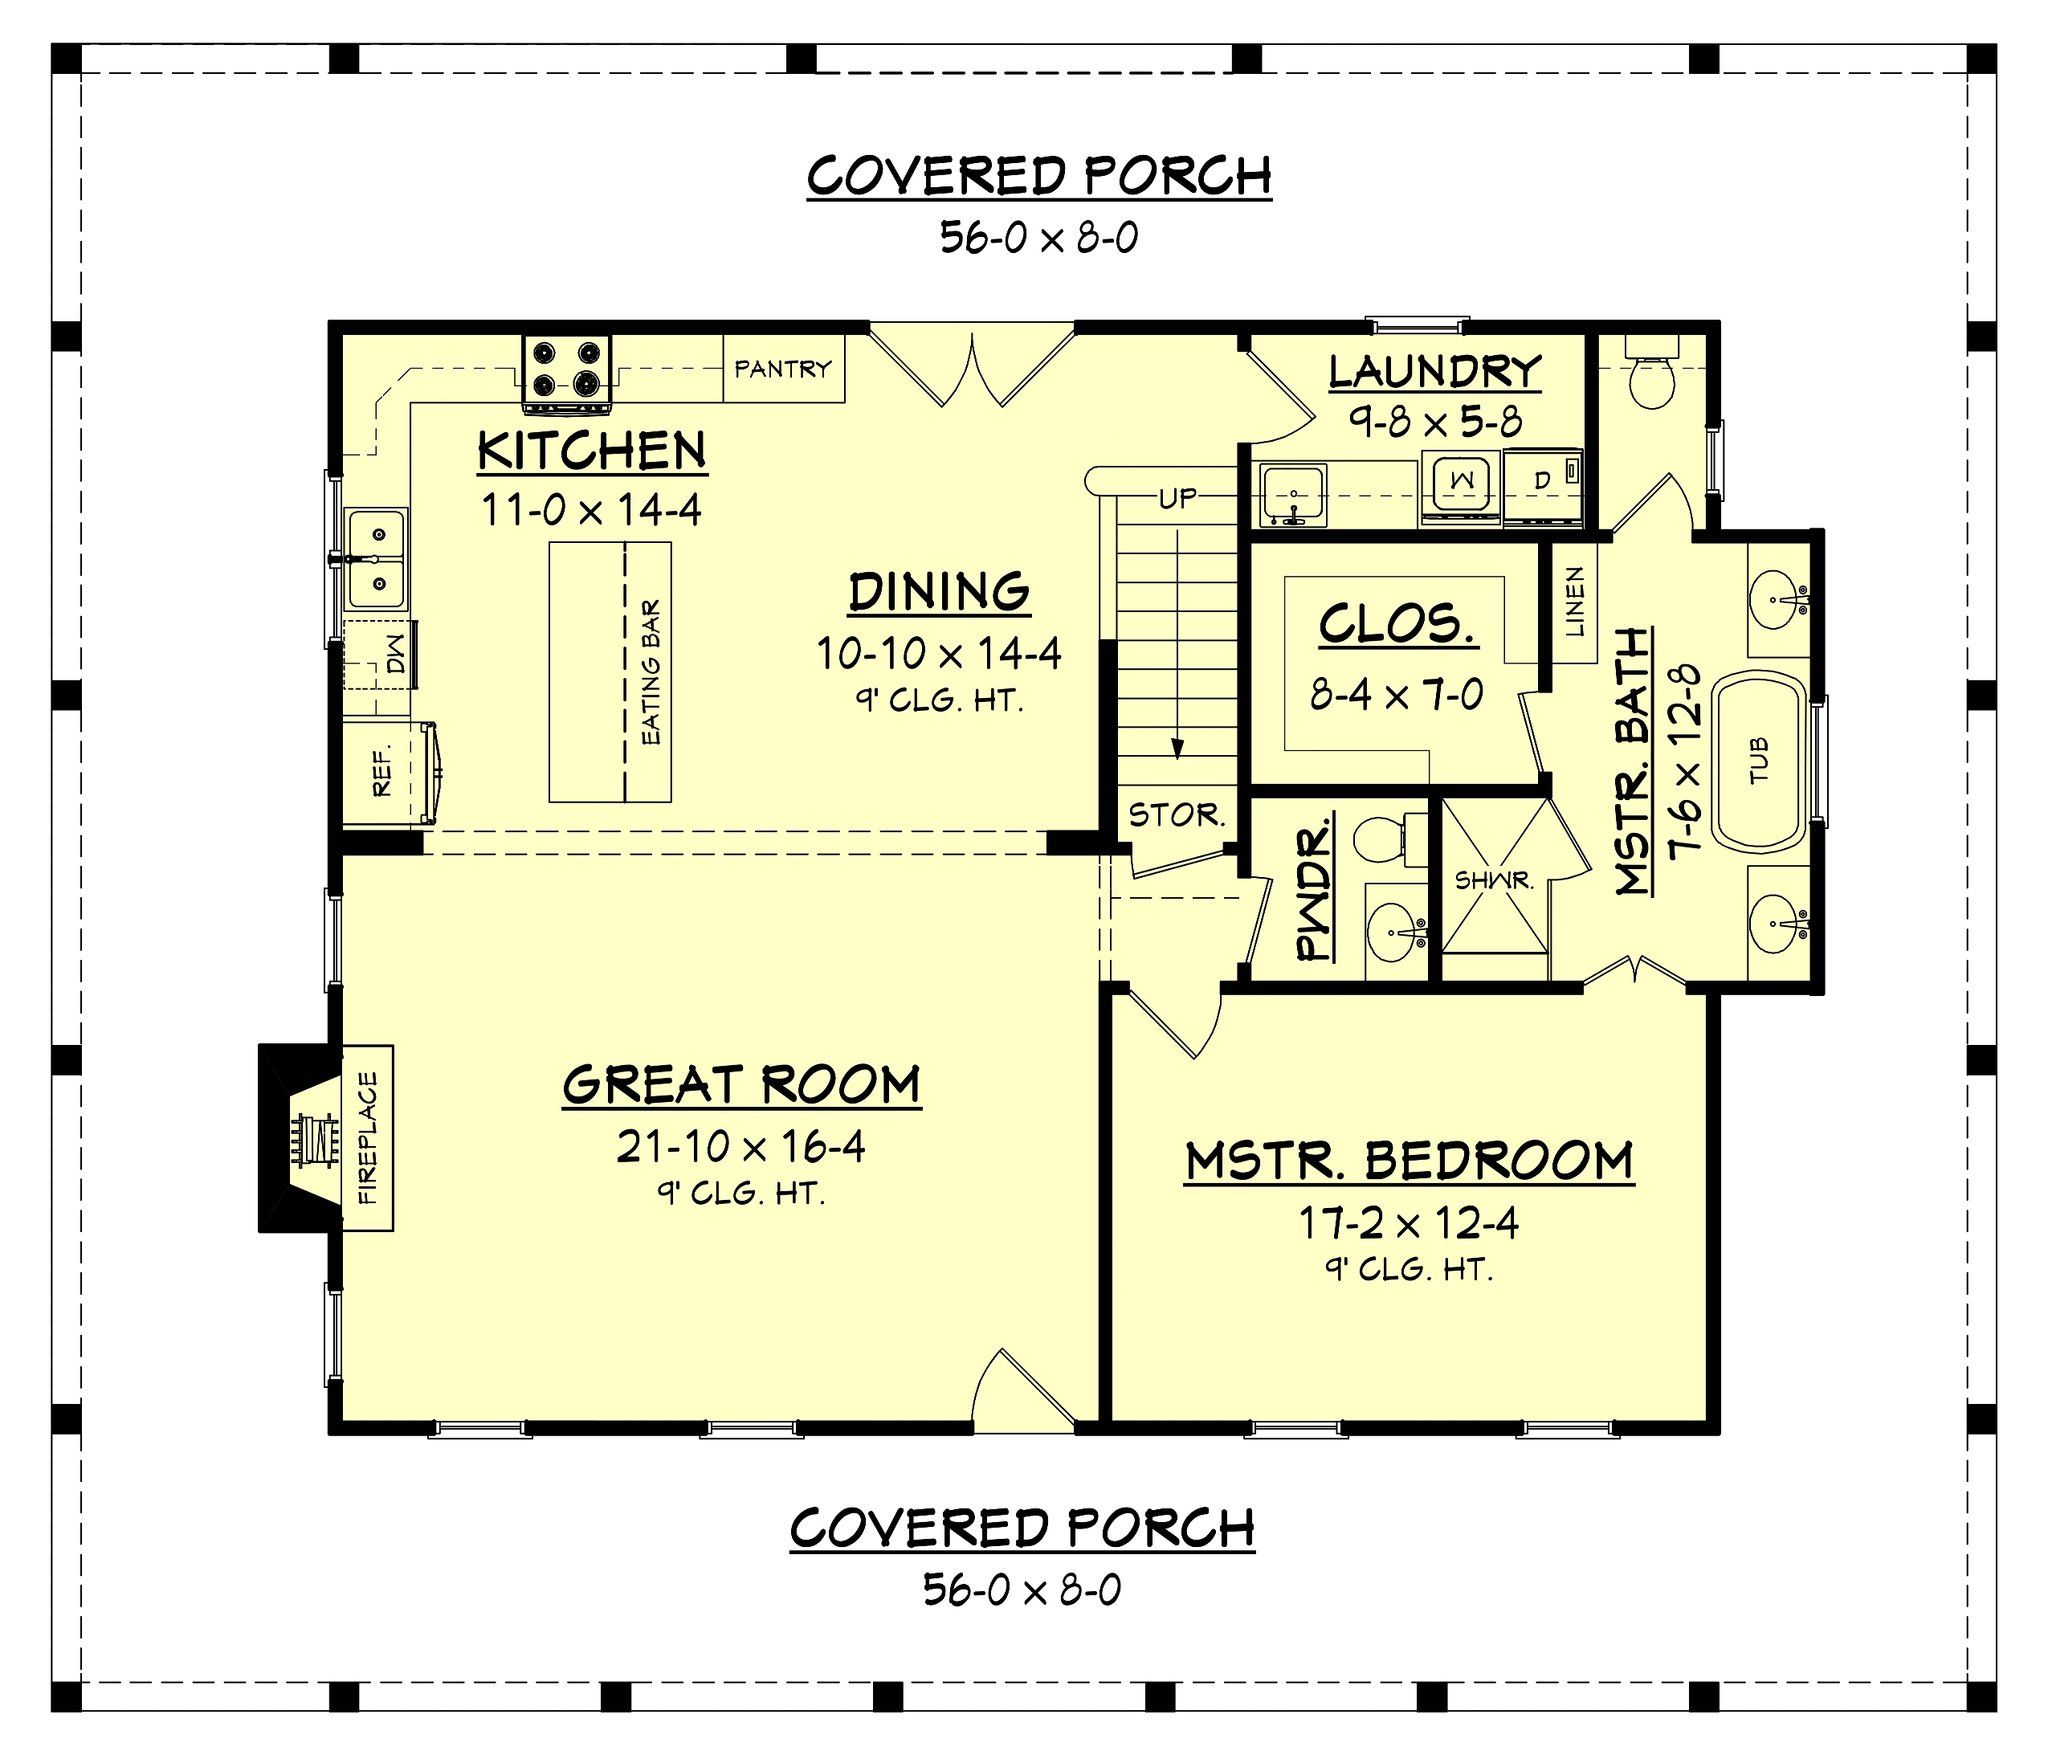 pretty design plan for house. Perkins Country House Plan has fantastic floor plan with possiblities for  upstairs grandkids girls boys dorm rooms This beautiful two story country design features wrap around